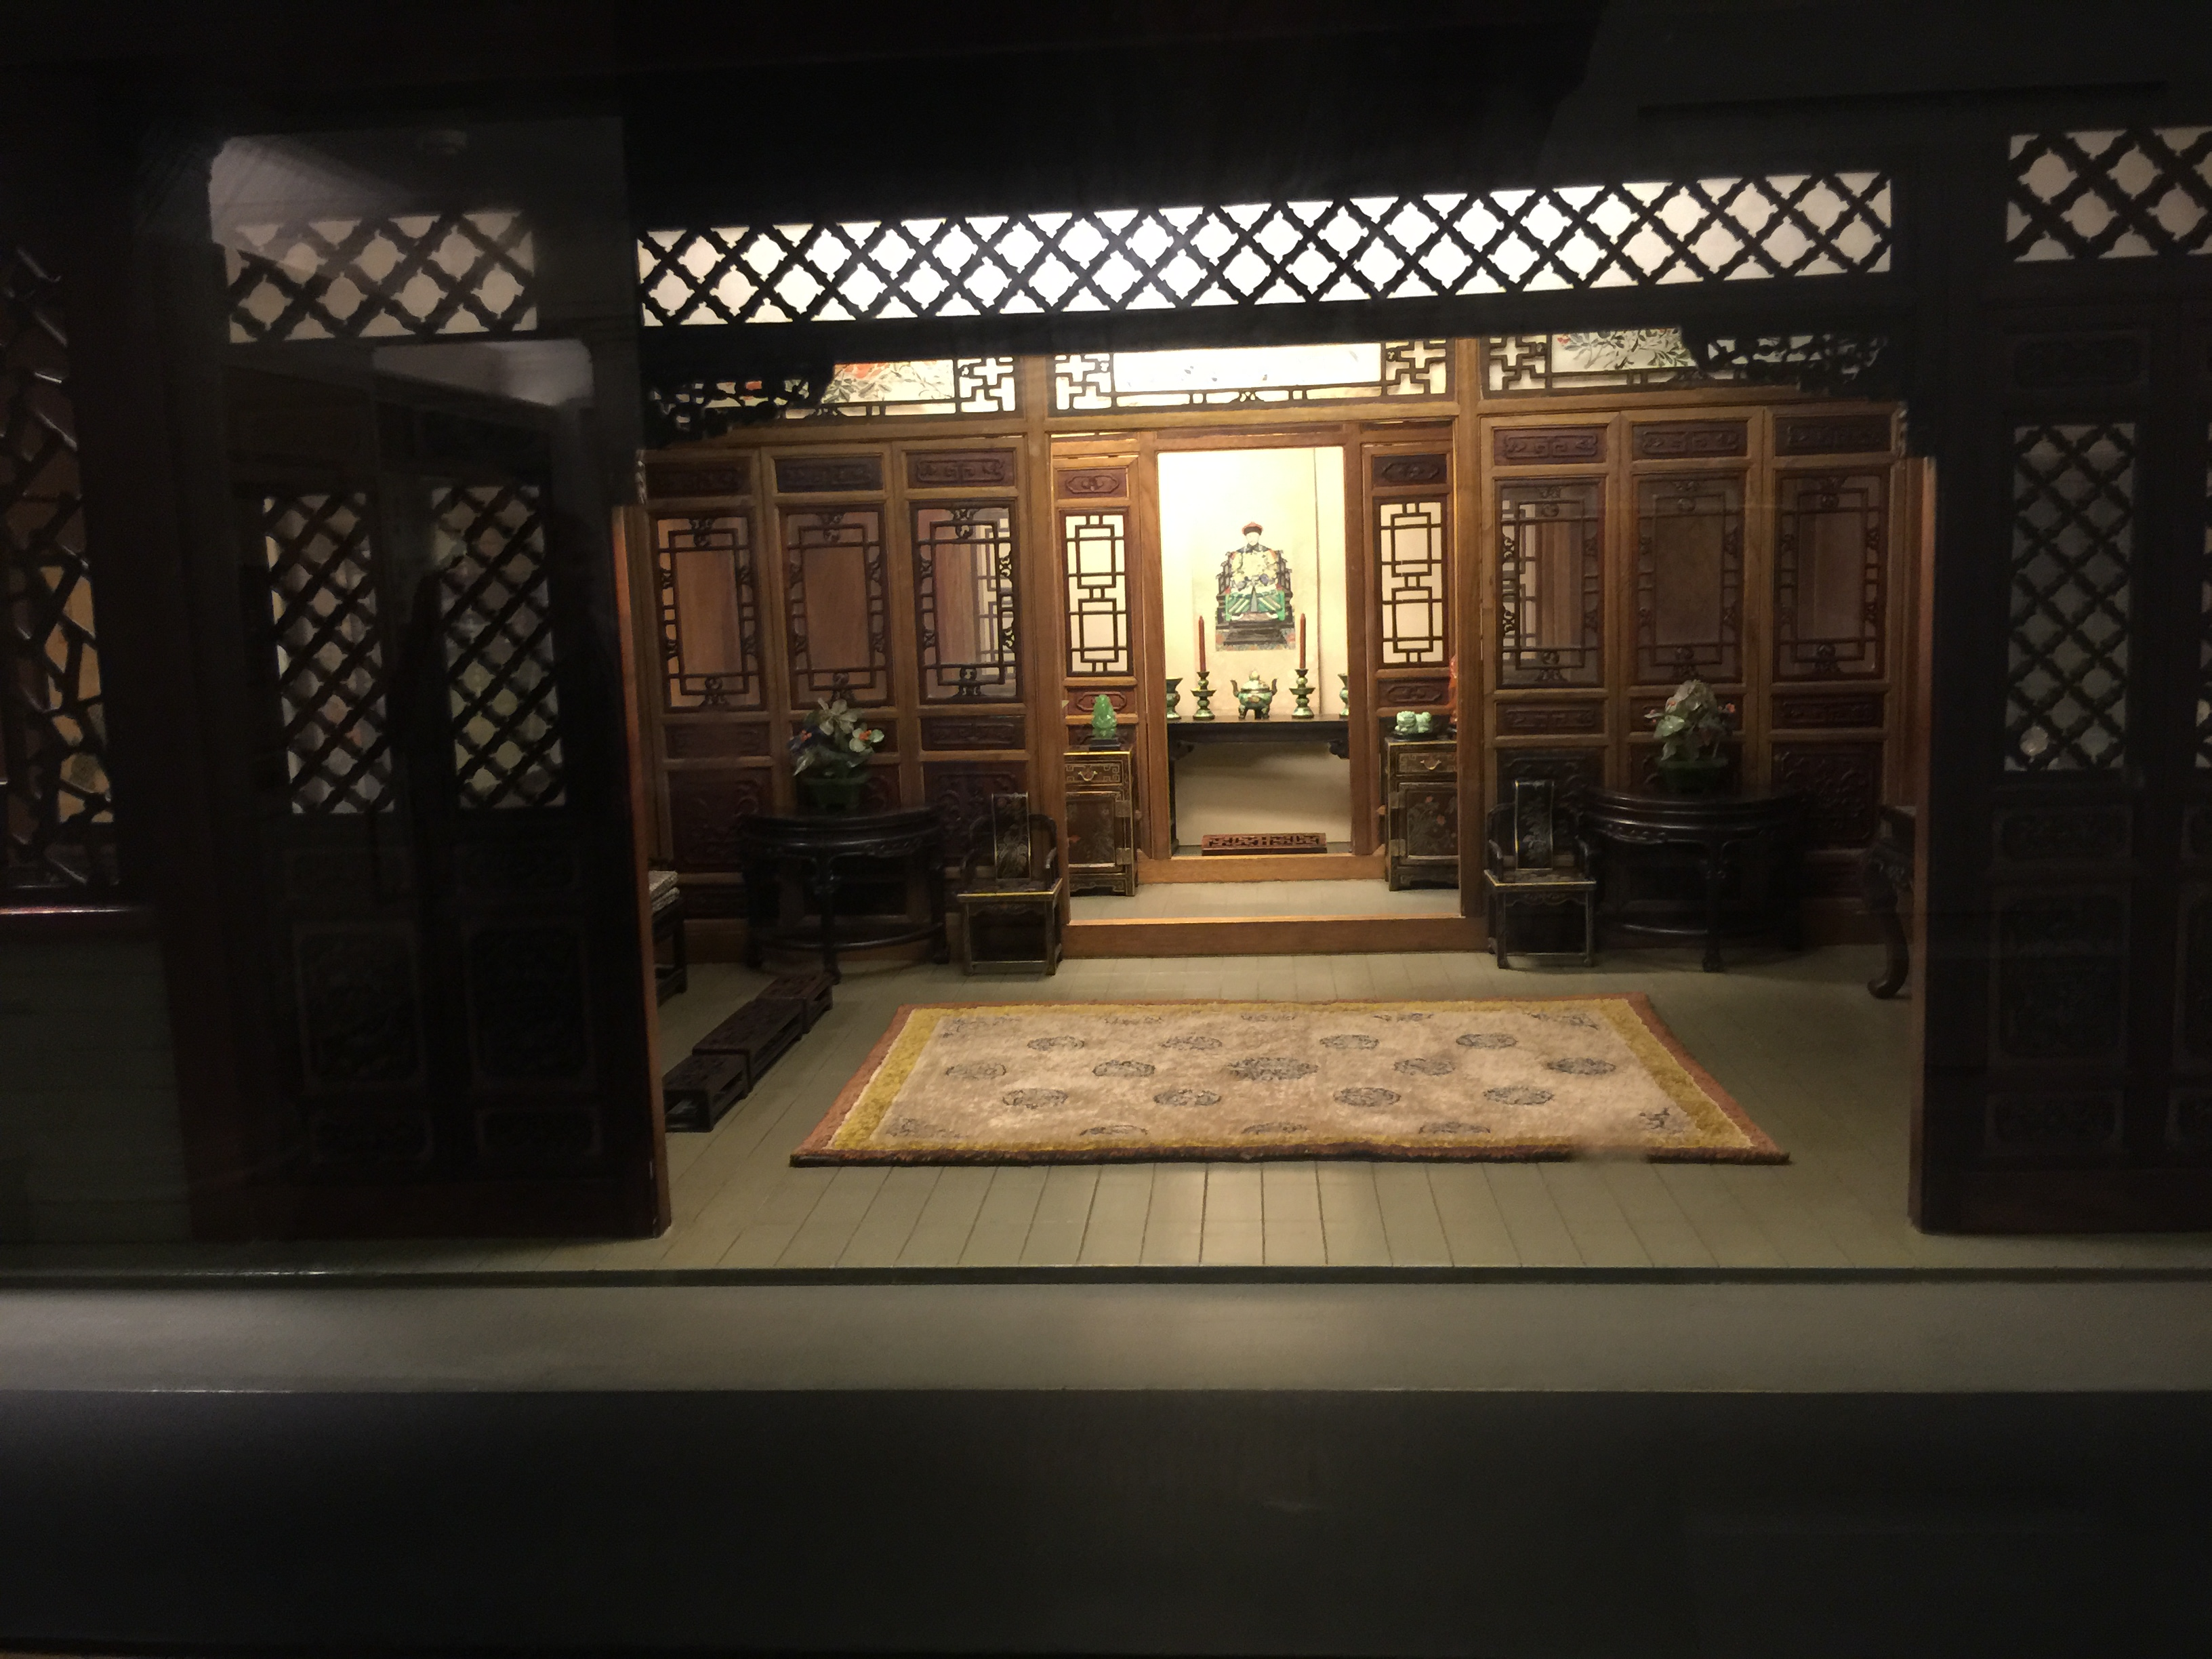 The Thorne Miniatures At The Art Institute Of Chicago